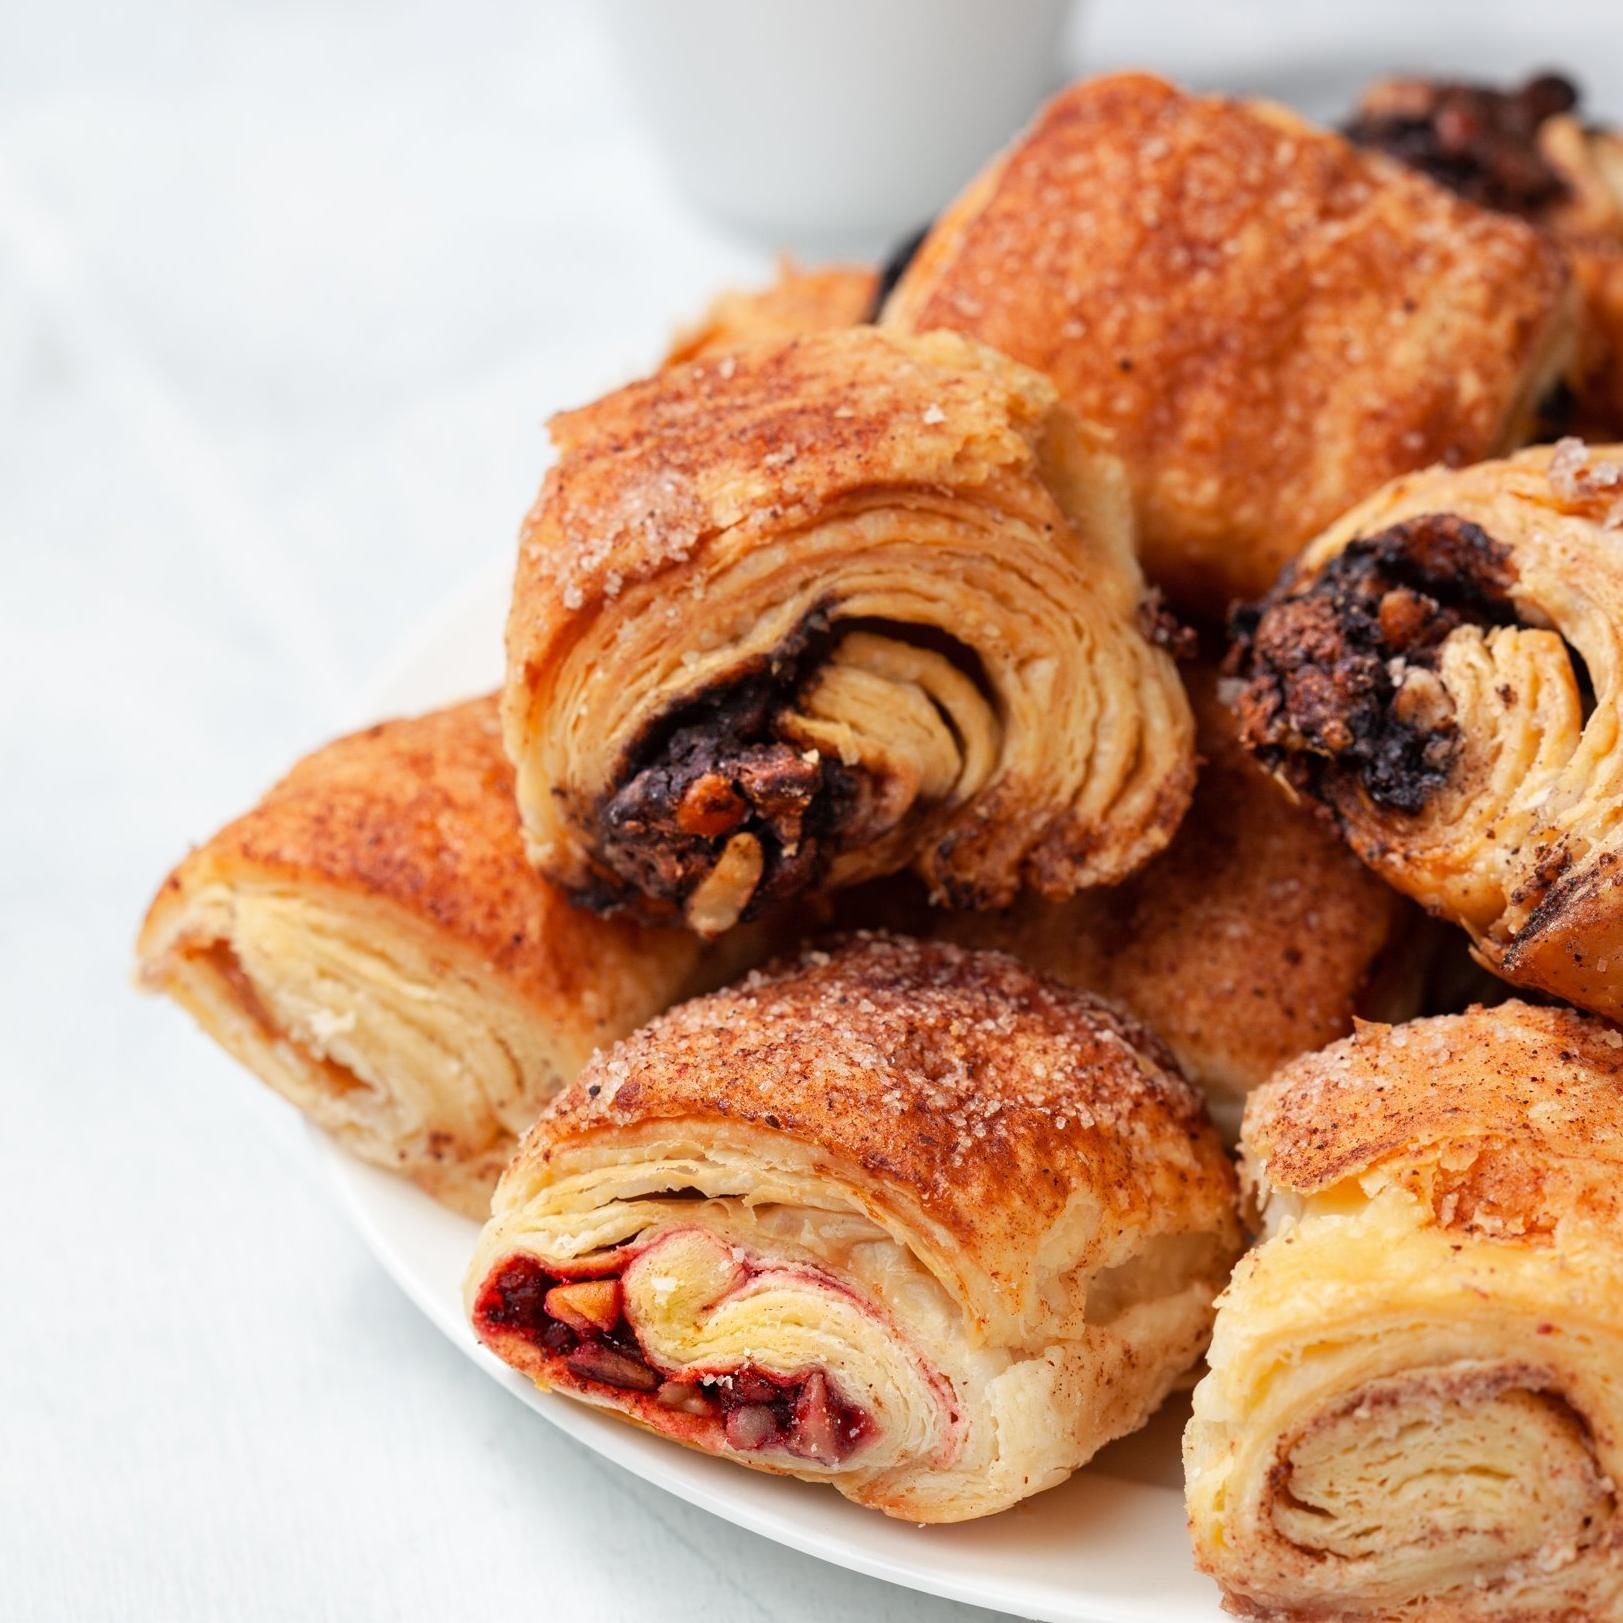 Best NYC food gifts: Cinnamon, chocolate, and raspberry rugelach from William Greenberg